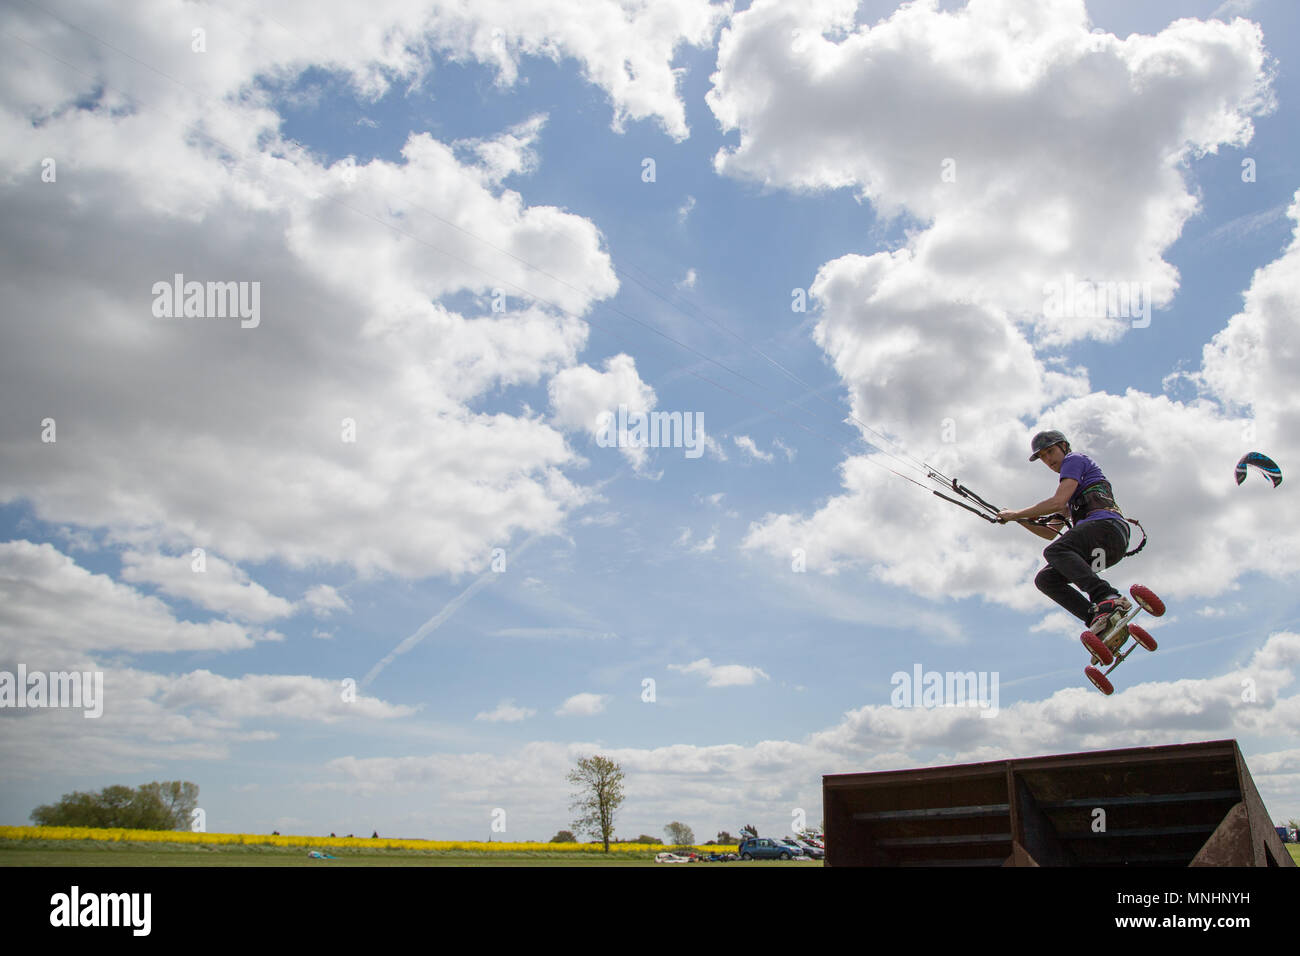 Extreme sport kite landboarding in Essex, UK. Going airborne. Stock Photo